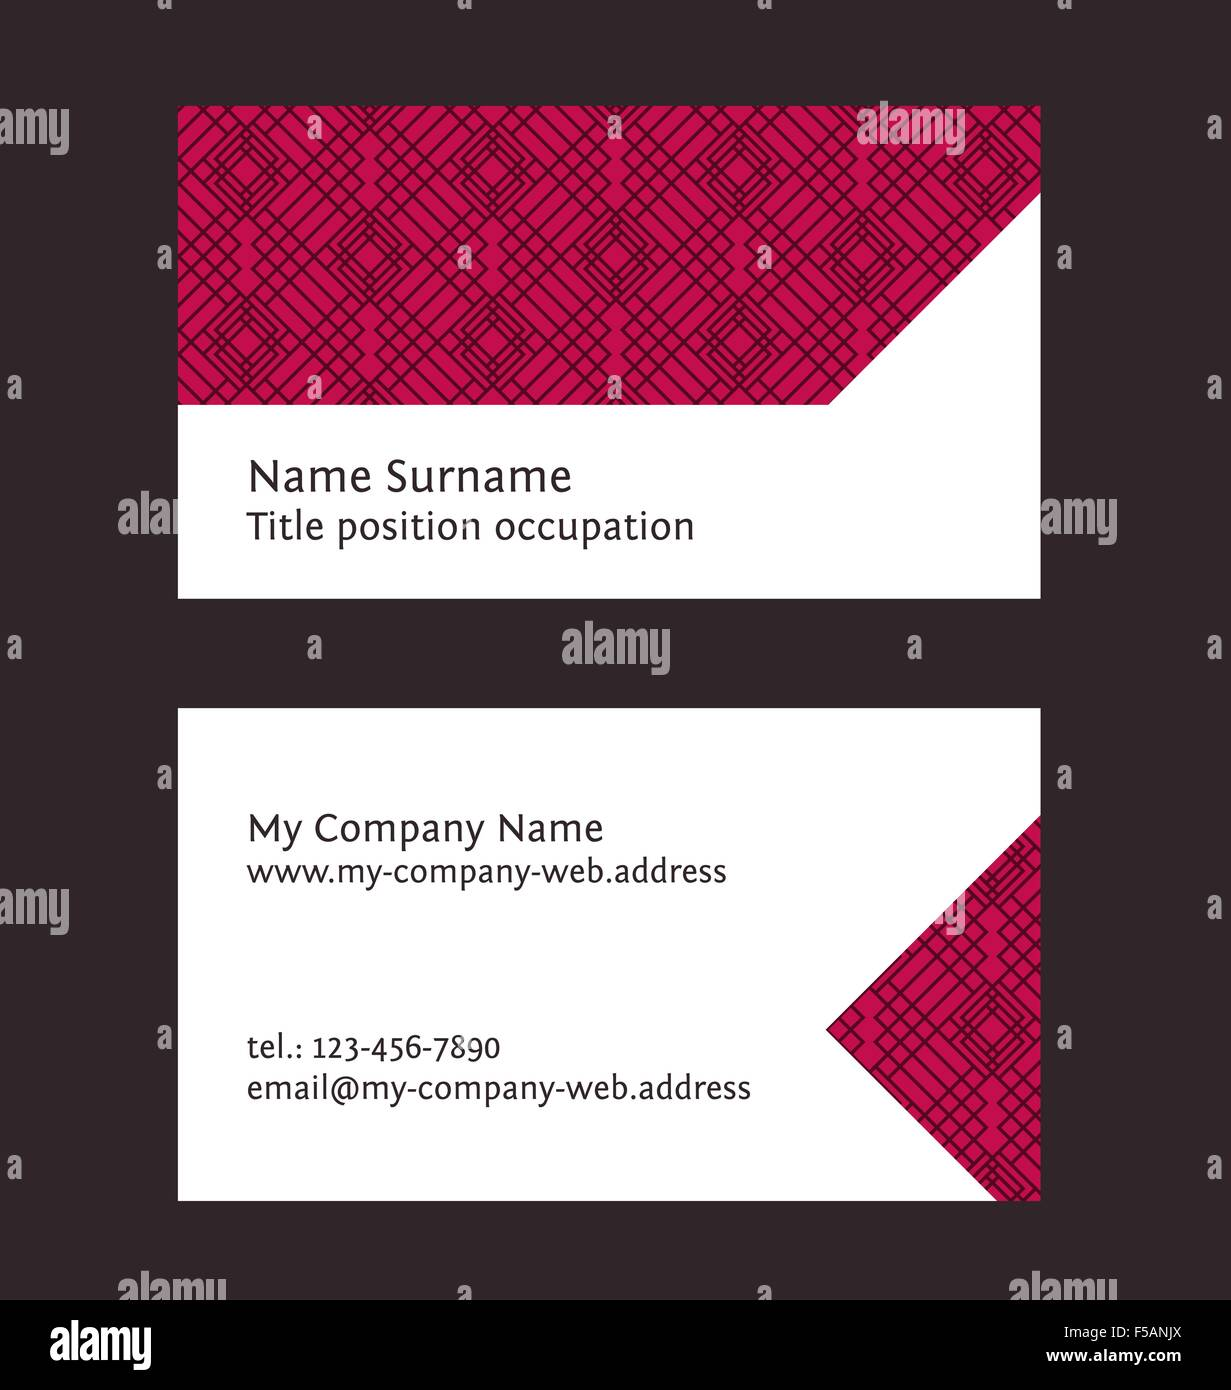 Business card layout linear geometric pattern editable design business card layout linear geometric pattern editable design template cheaphphosting Choice Image